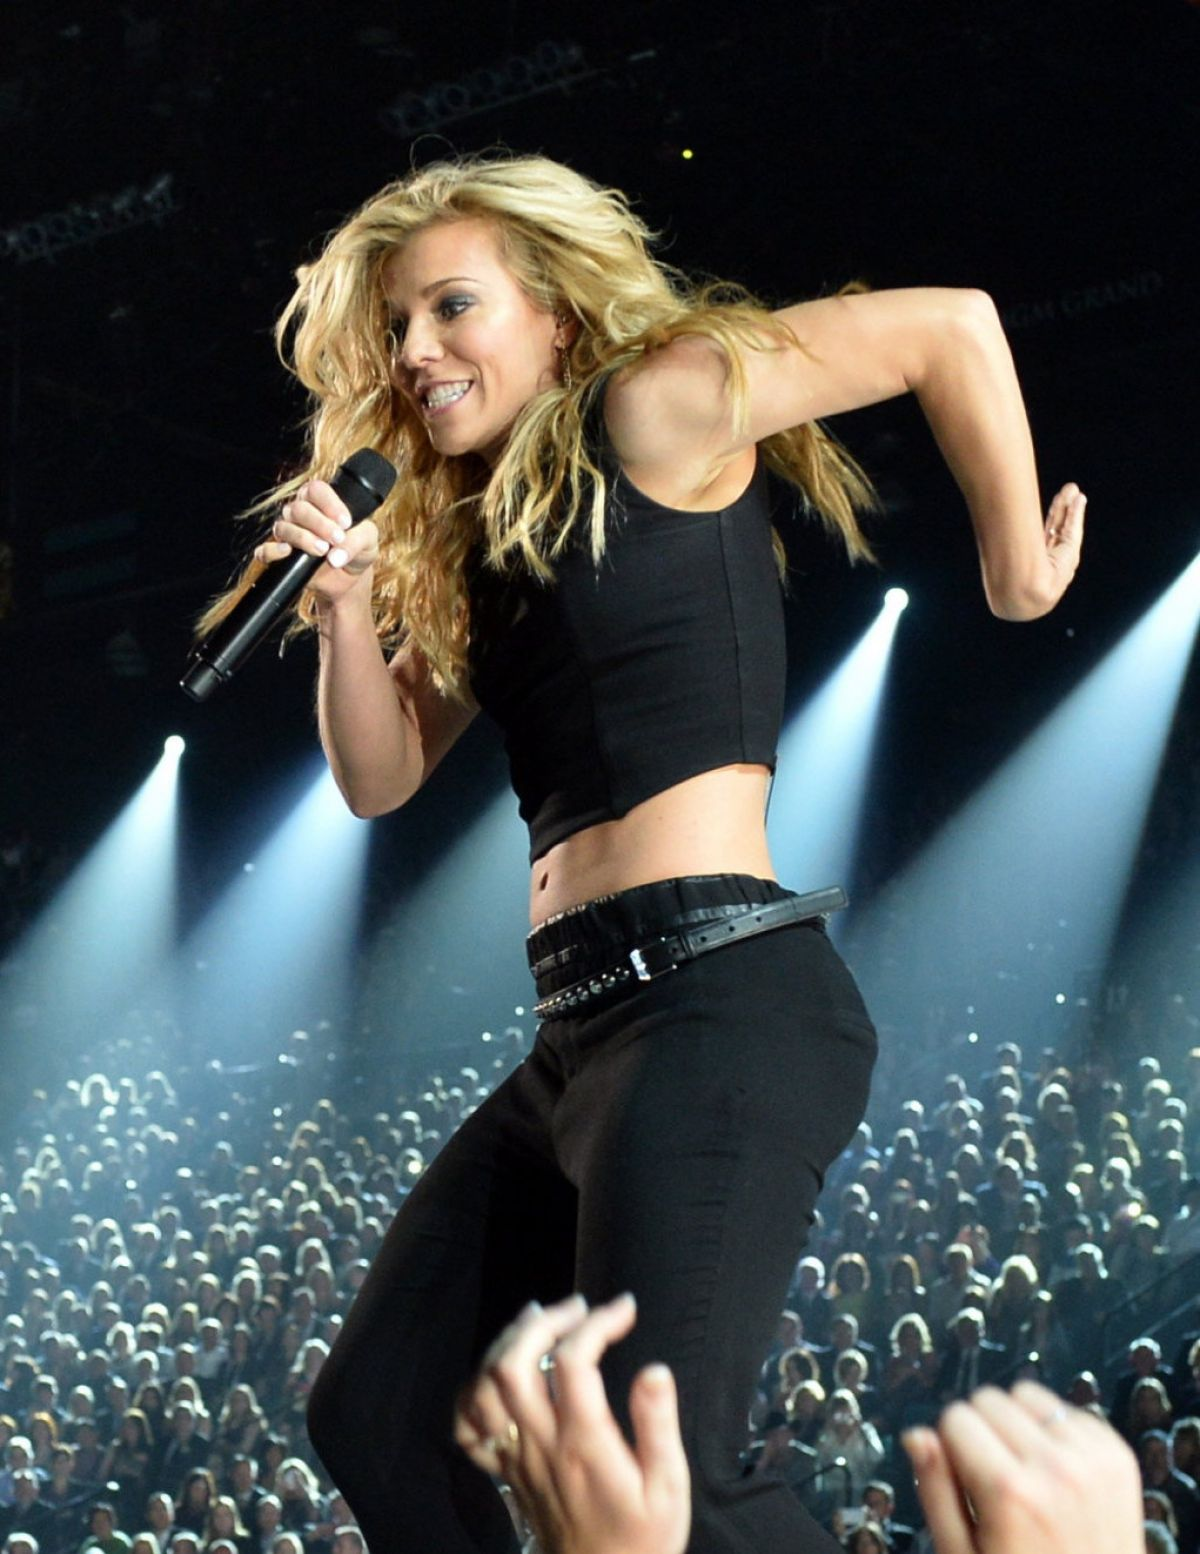 hot pics of kimberly perry